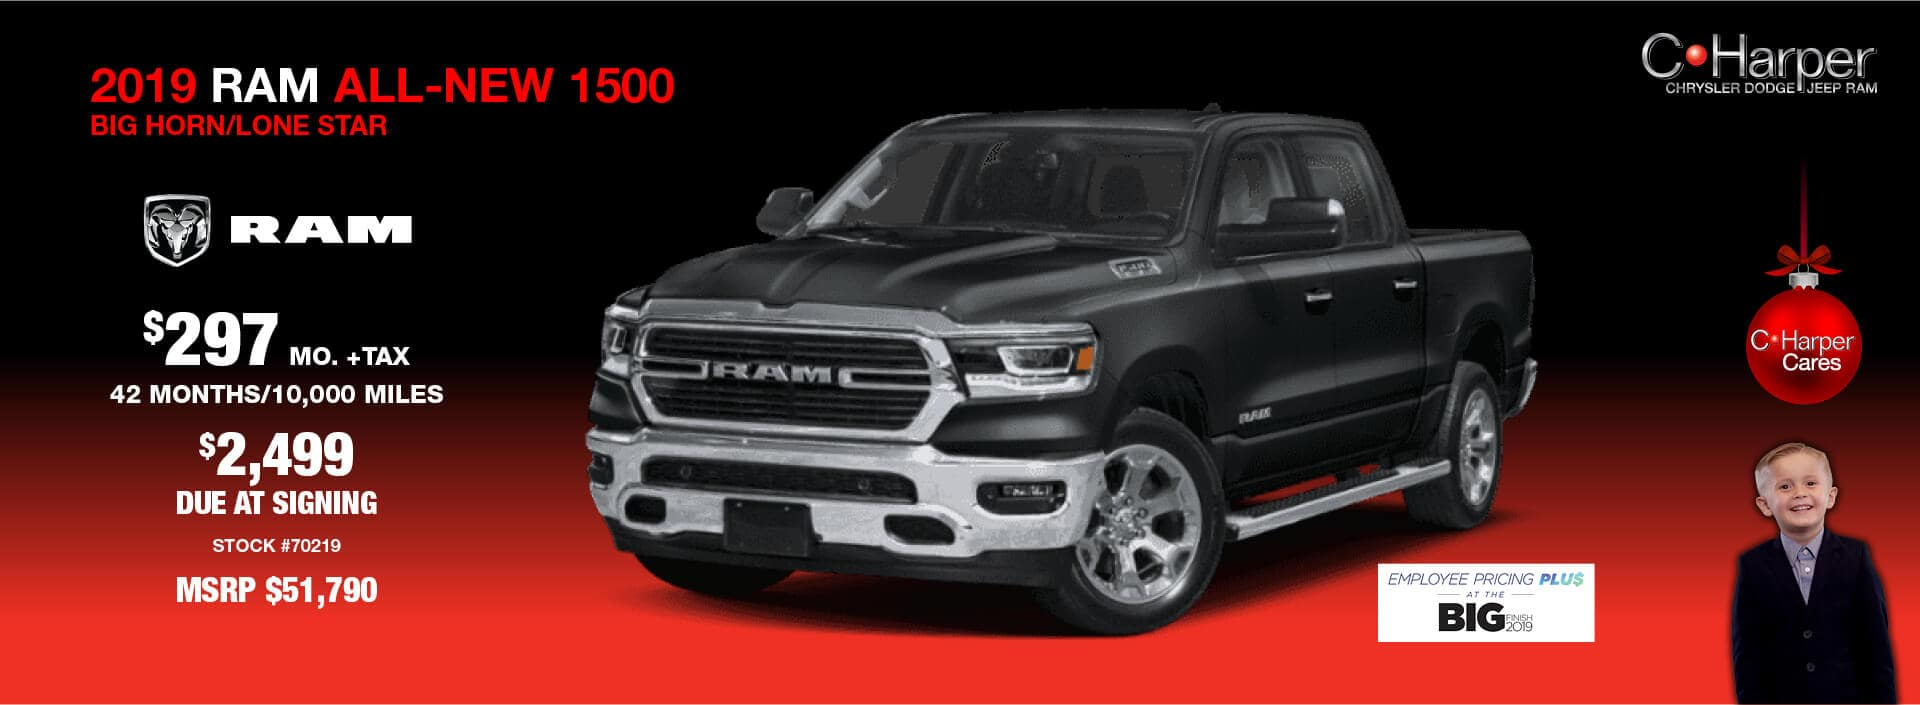 2019 Ram All-New 1500 (Big Horn/Lone Star)